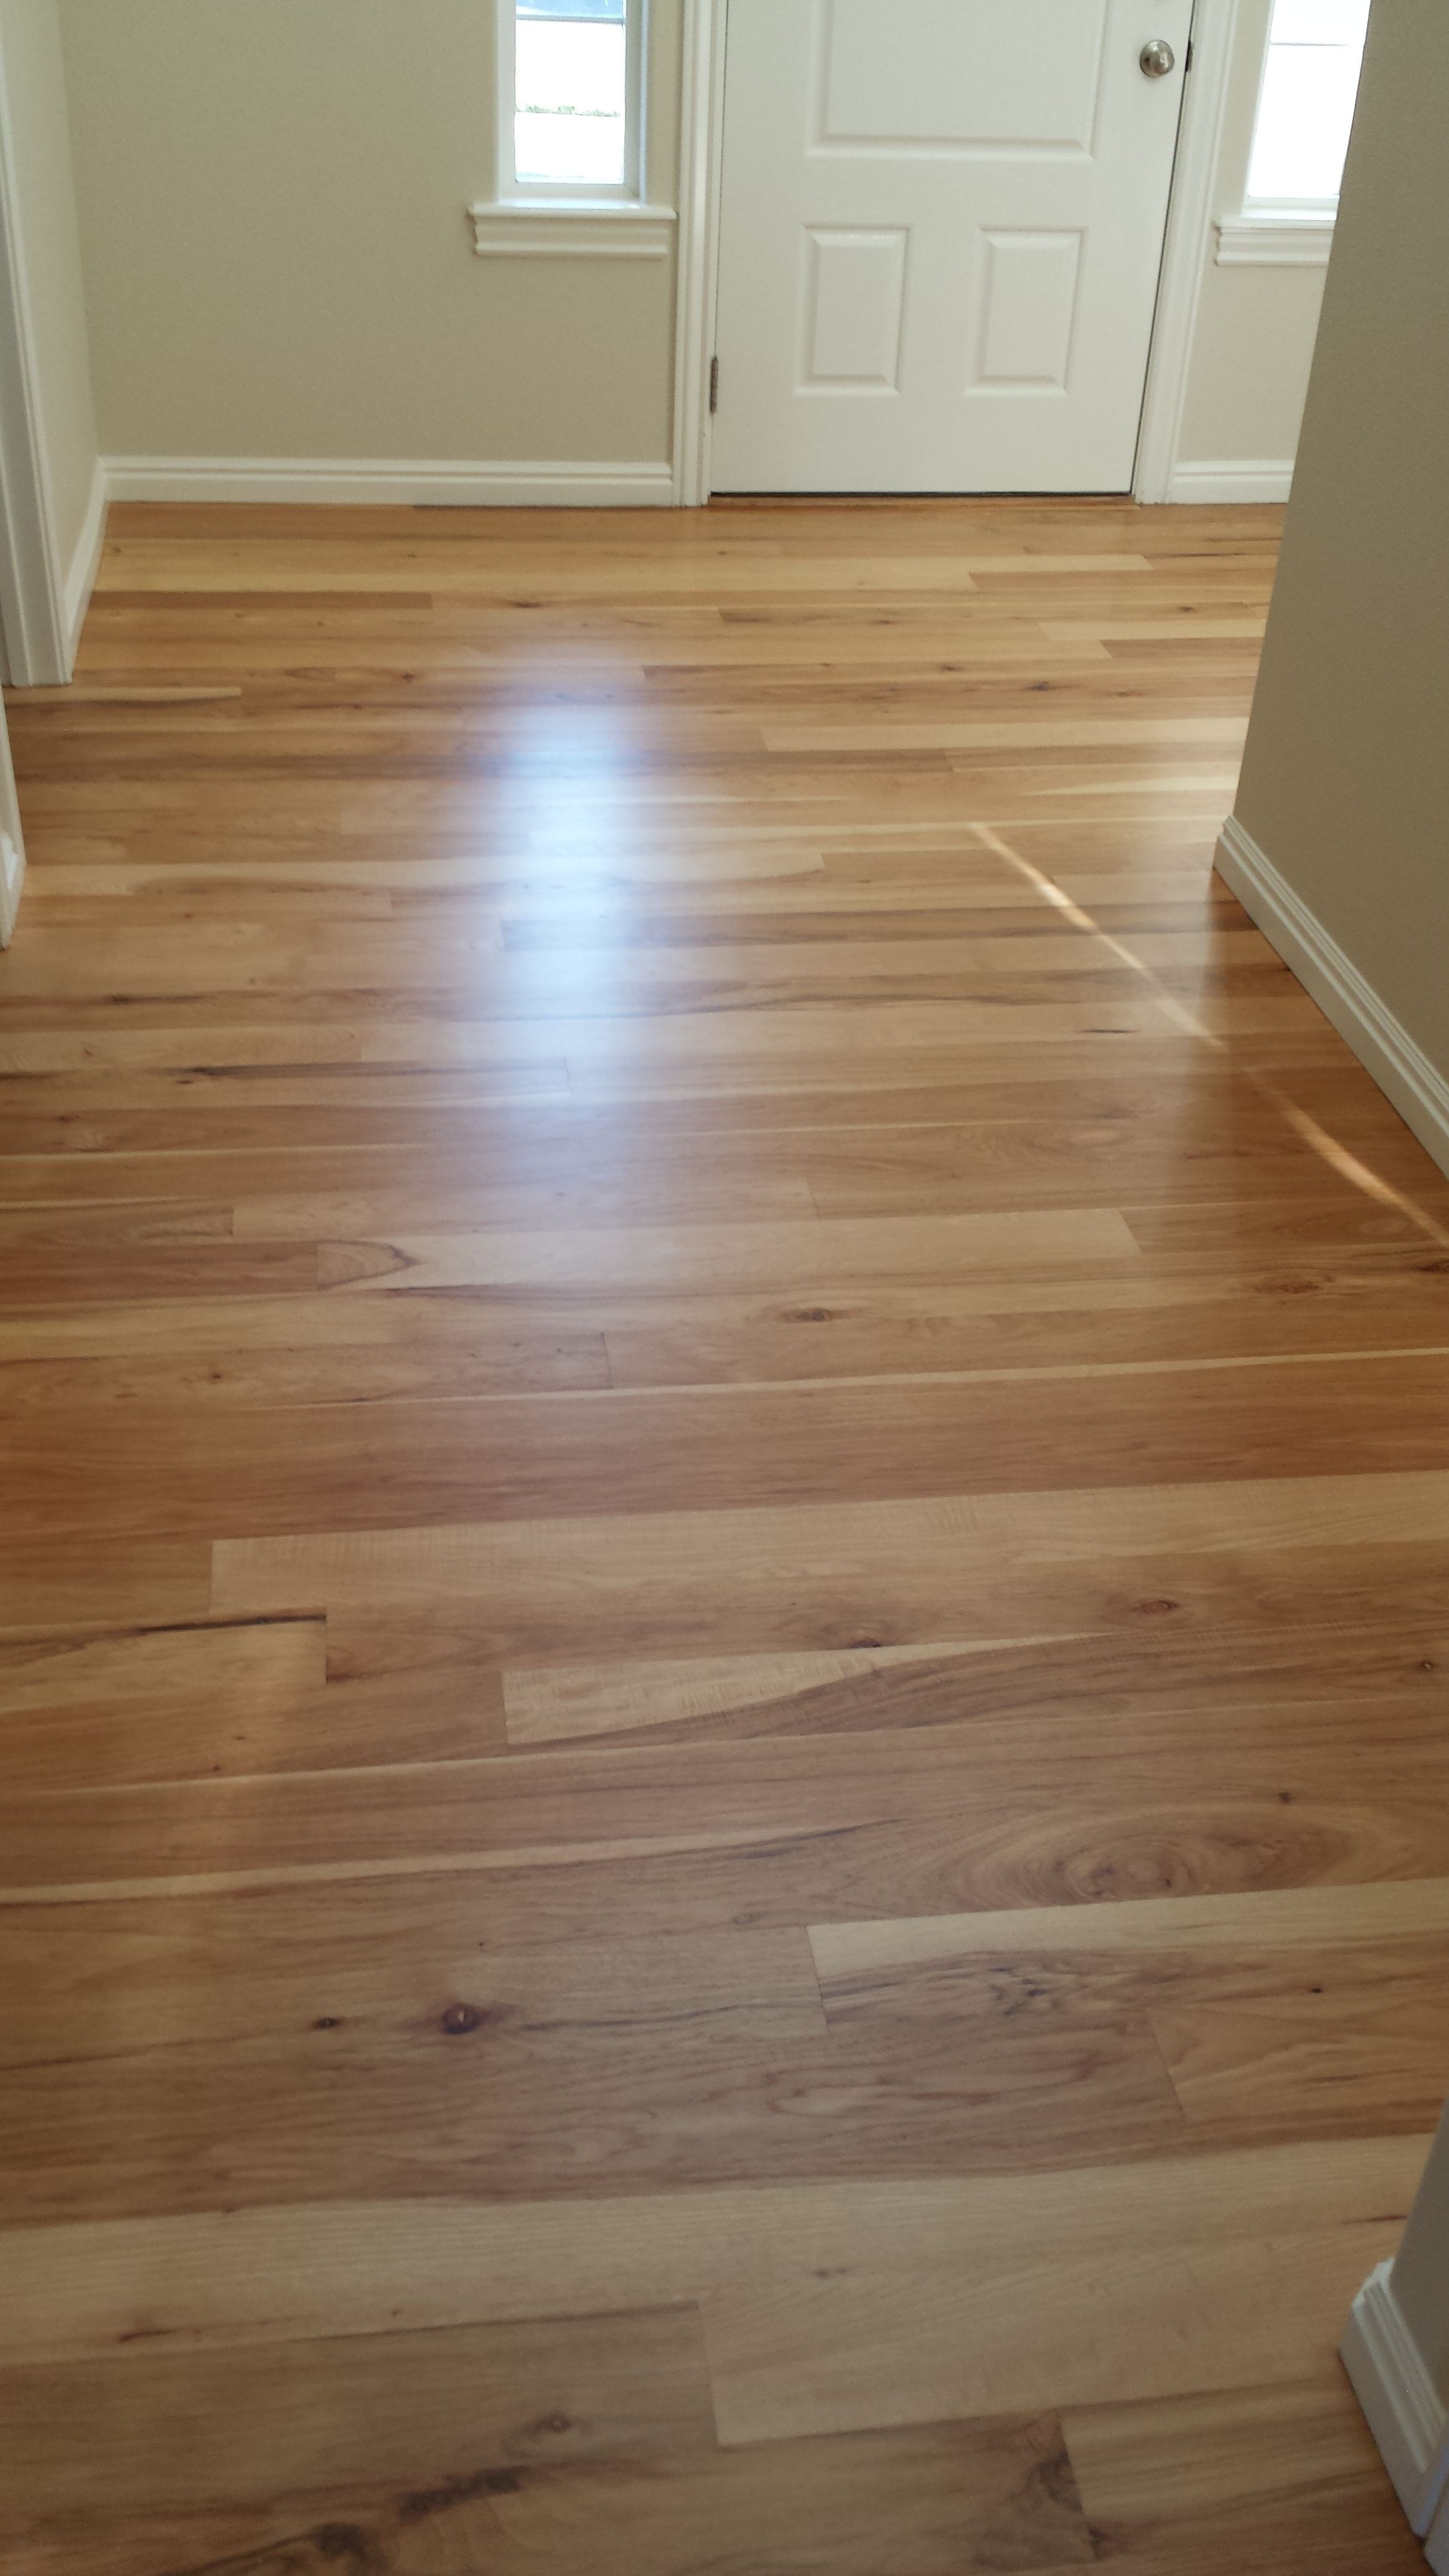 Hardwood Flooring Boise Idaho Of Hardwood Floor Store Floor Plan Ideas Pertaining to Hardwood Floor Store Rustic Hickory Sand and Refinish Capell Flooring and Interiors In